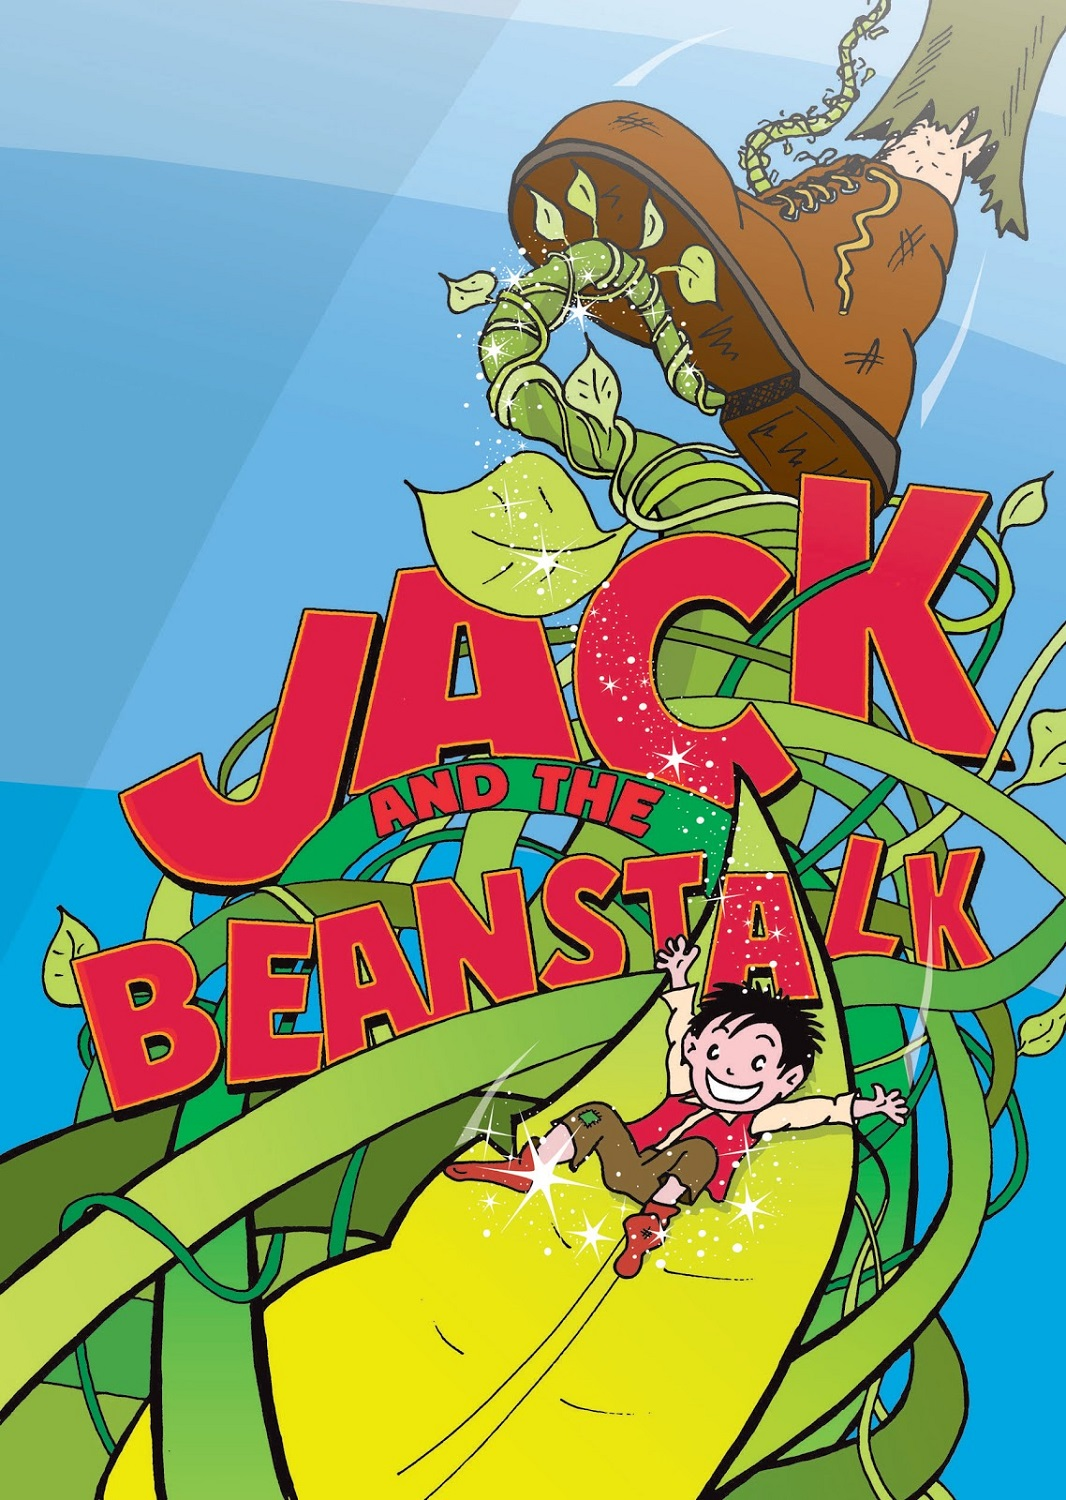 jack-and-the-beanstalk-images-children